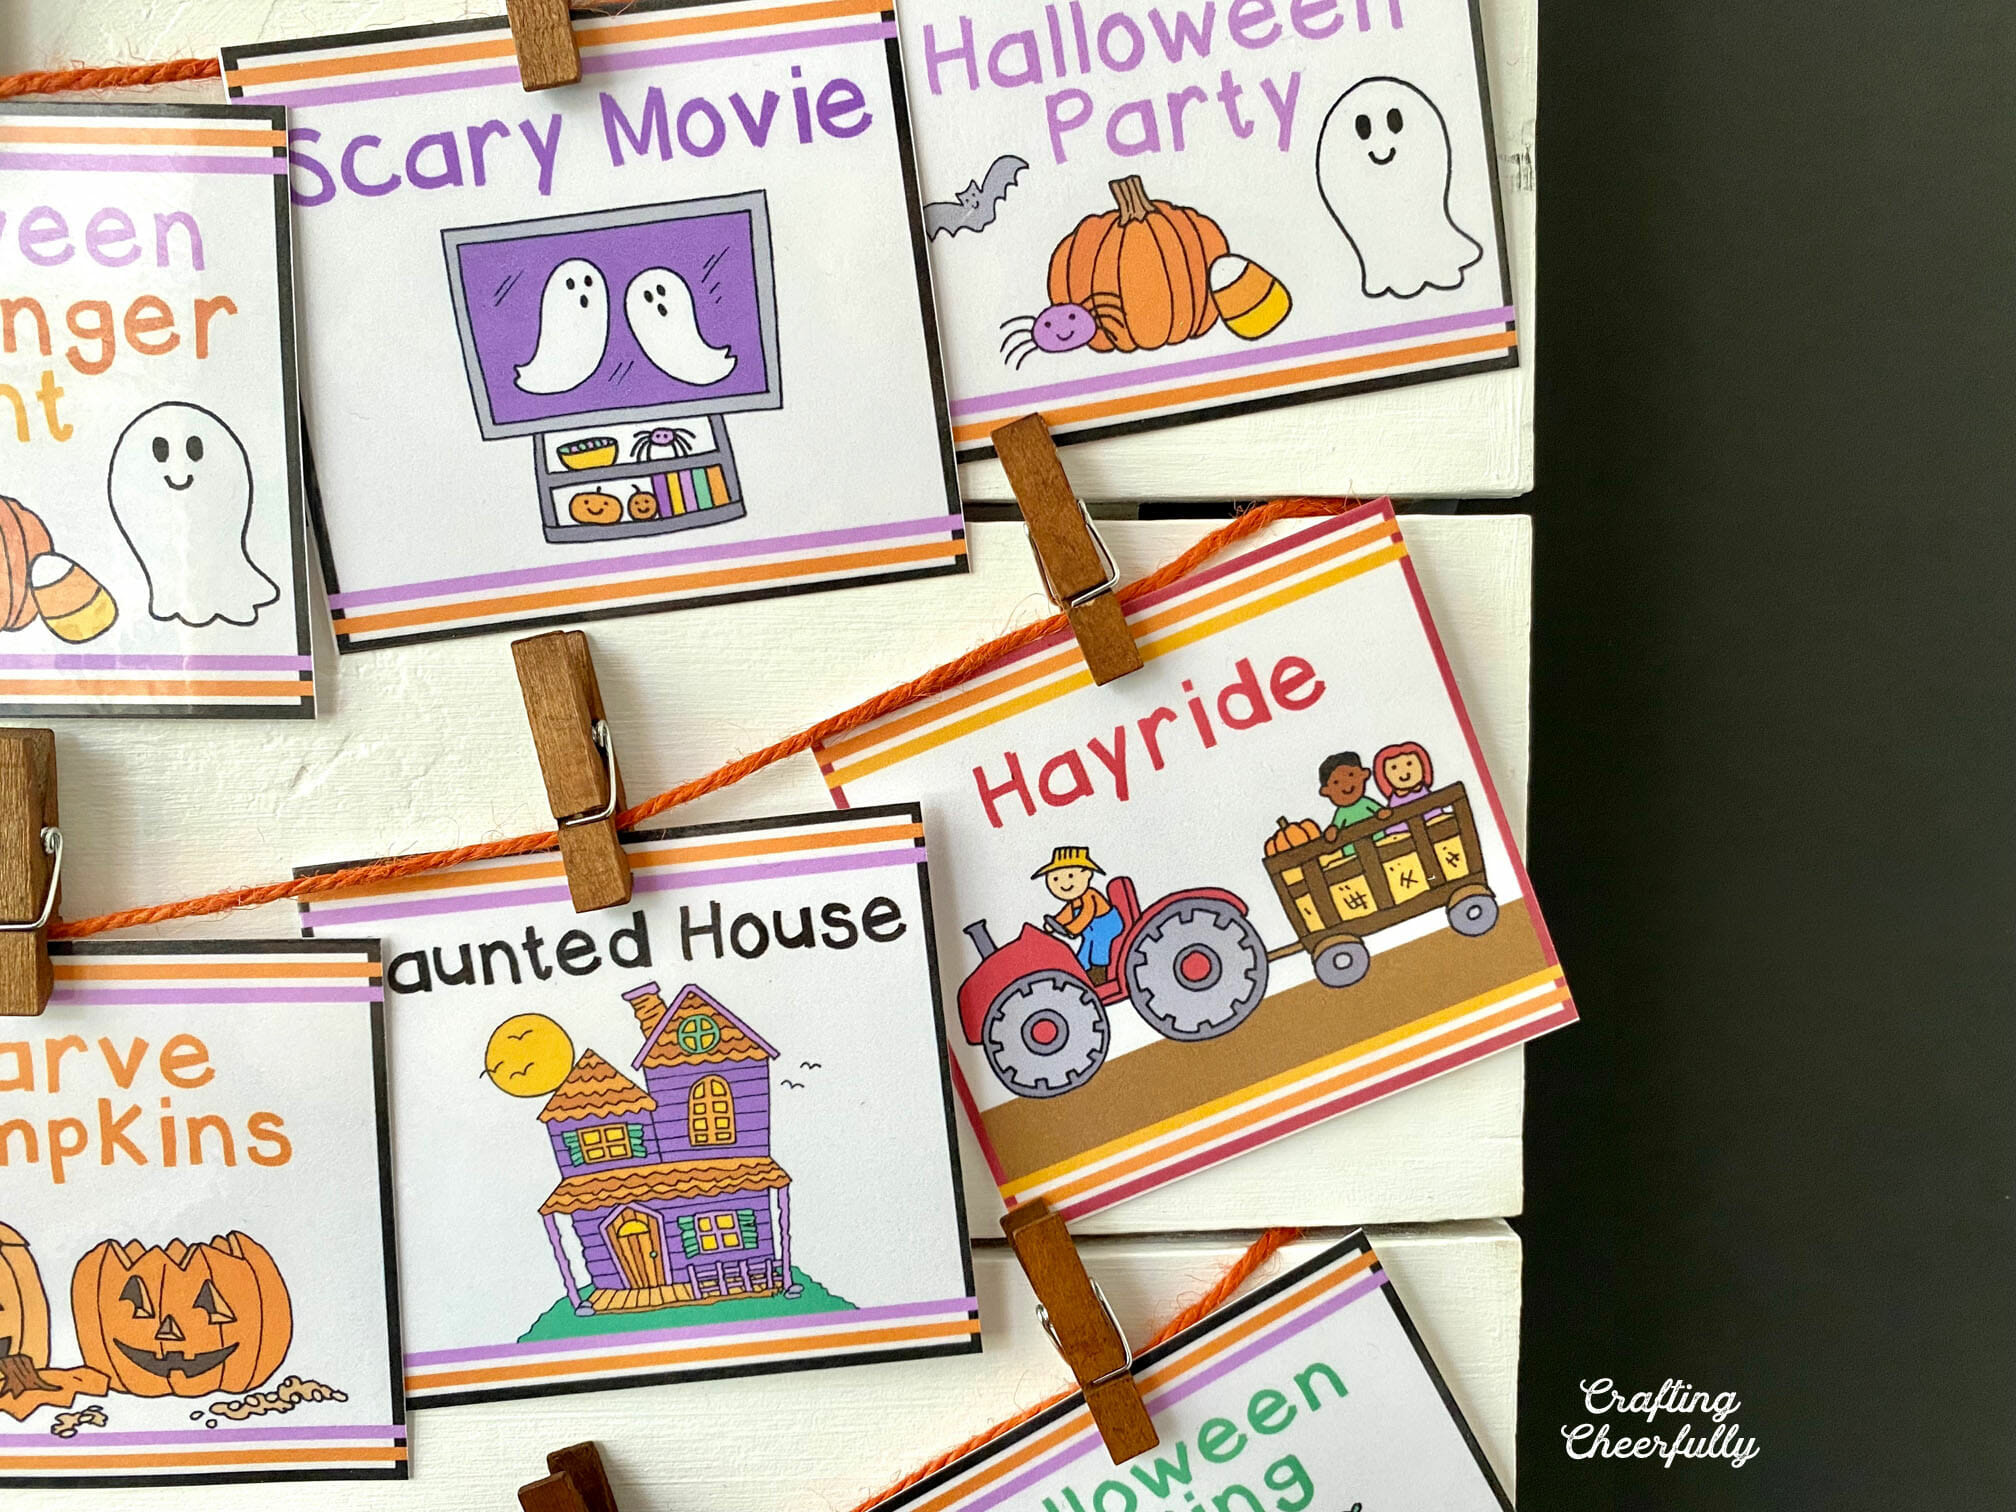 Halloween bucket list created with Halloween activity cards on a white board.